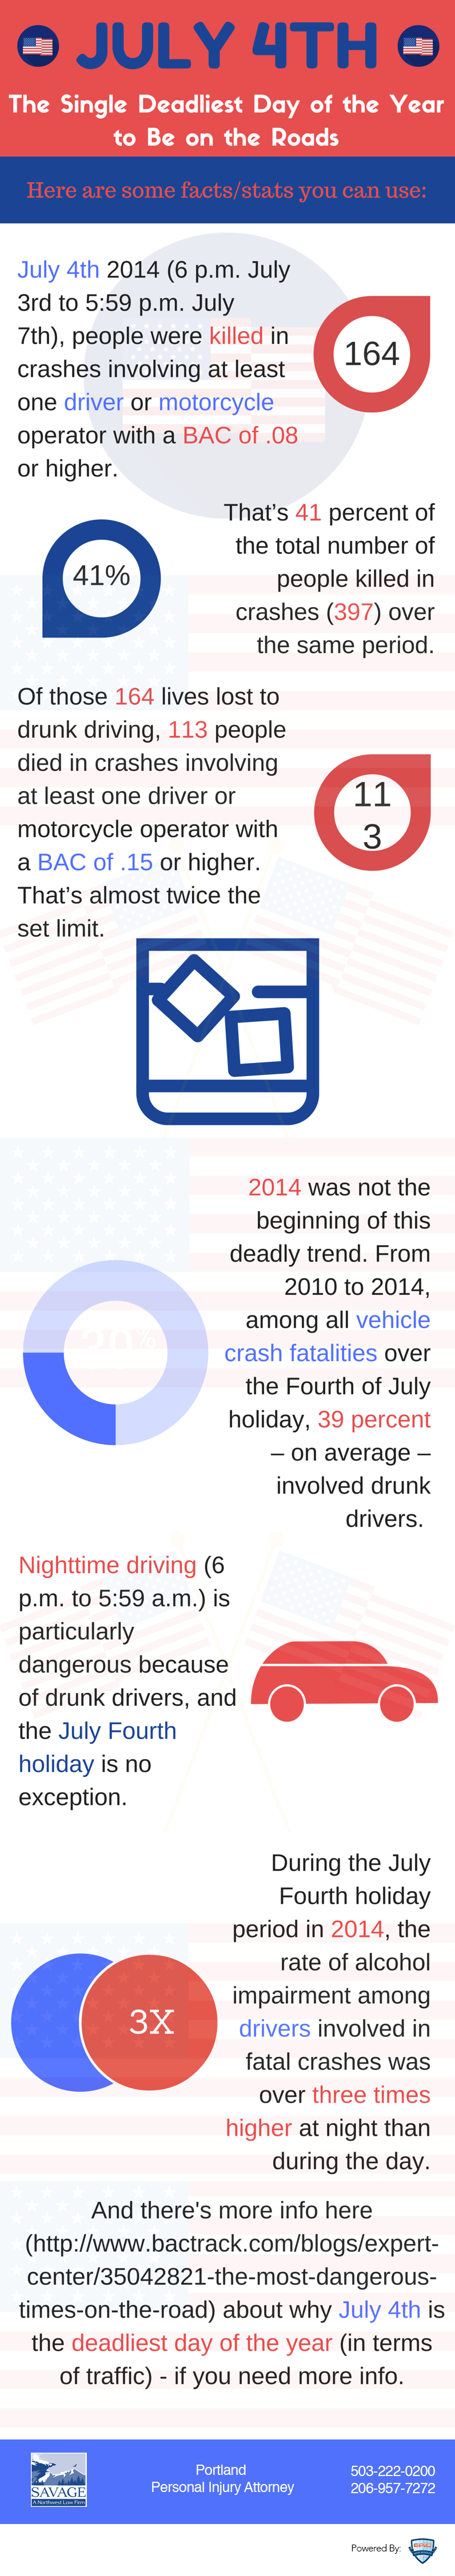 Deadly Car Crashes Peak on July 4th [Infographic]